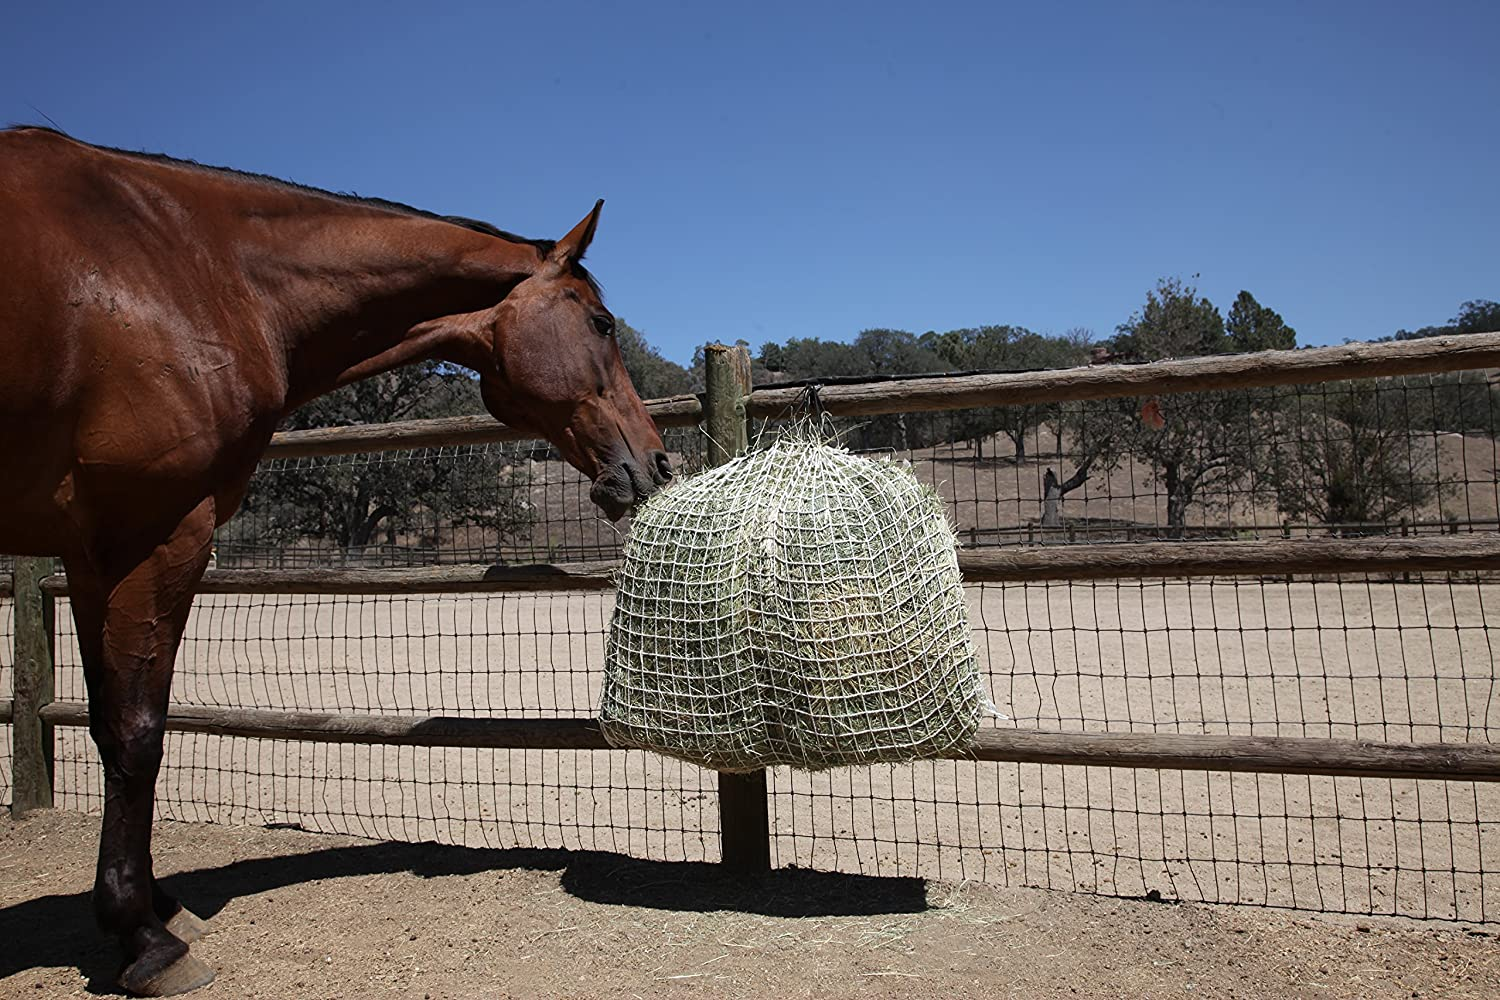 Freedom Feeder Mesh Net Full Day Slow Horse Feeder — Designed to Hold 30 lbs/4 Flakes of Hay and Feed Horse All Day — Reduces Horse Feeding Anxiety and Behavioral Issues